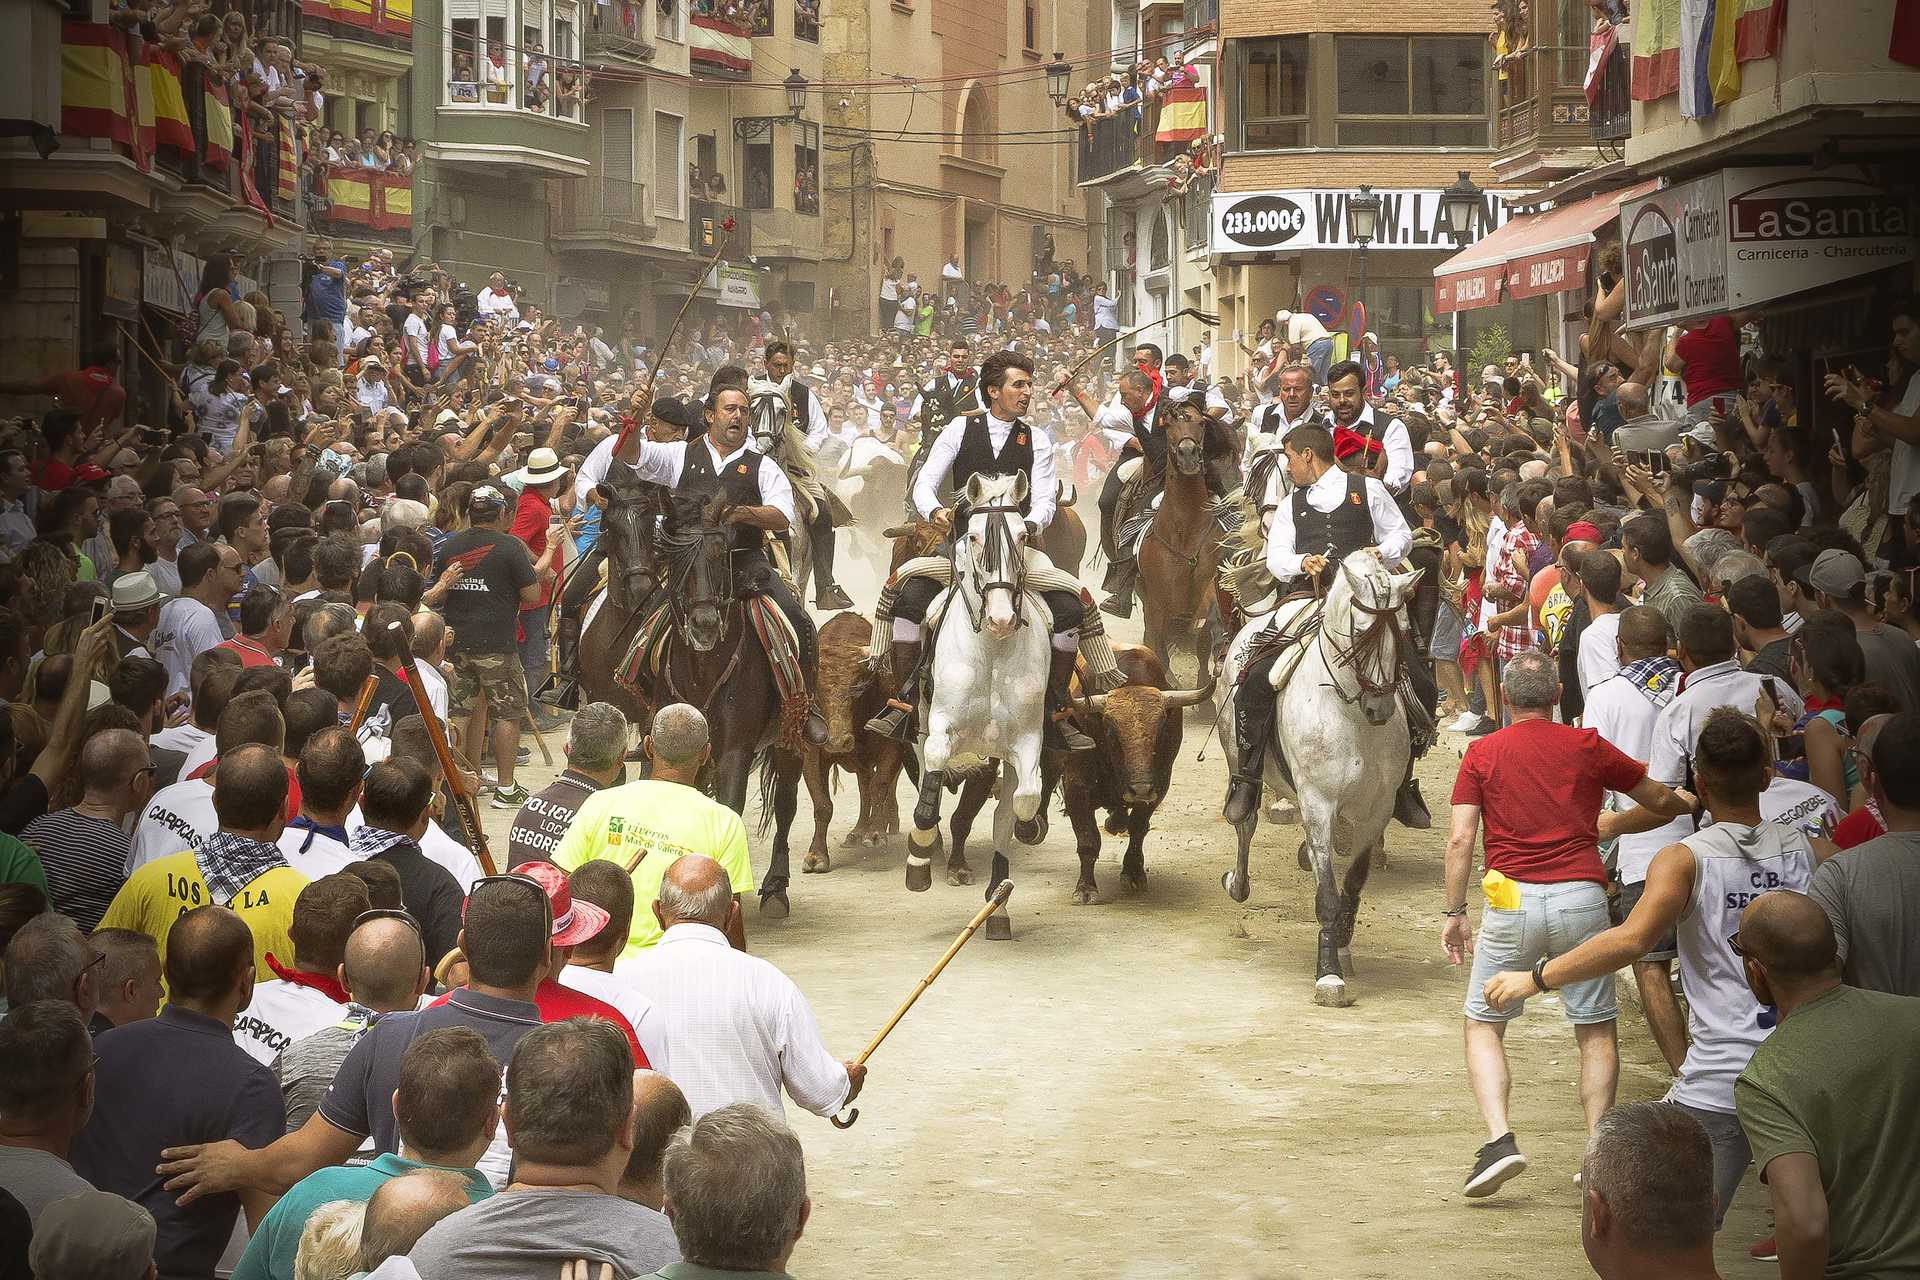 Entra de Toros y Caballos (Entrance of Bulls and Horses)